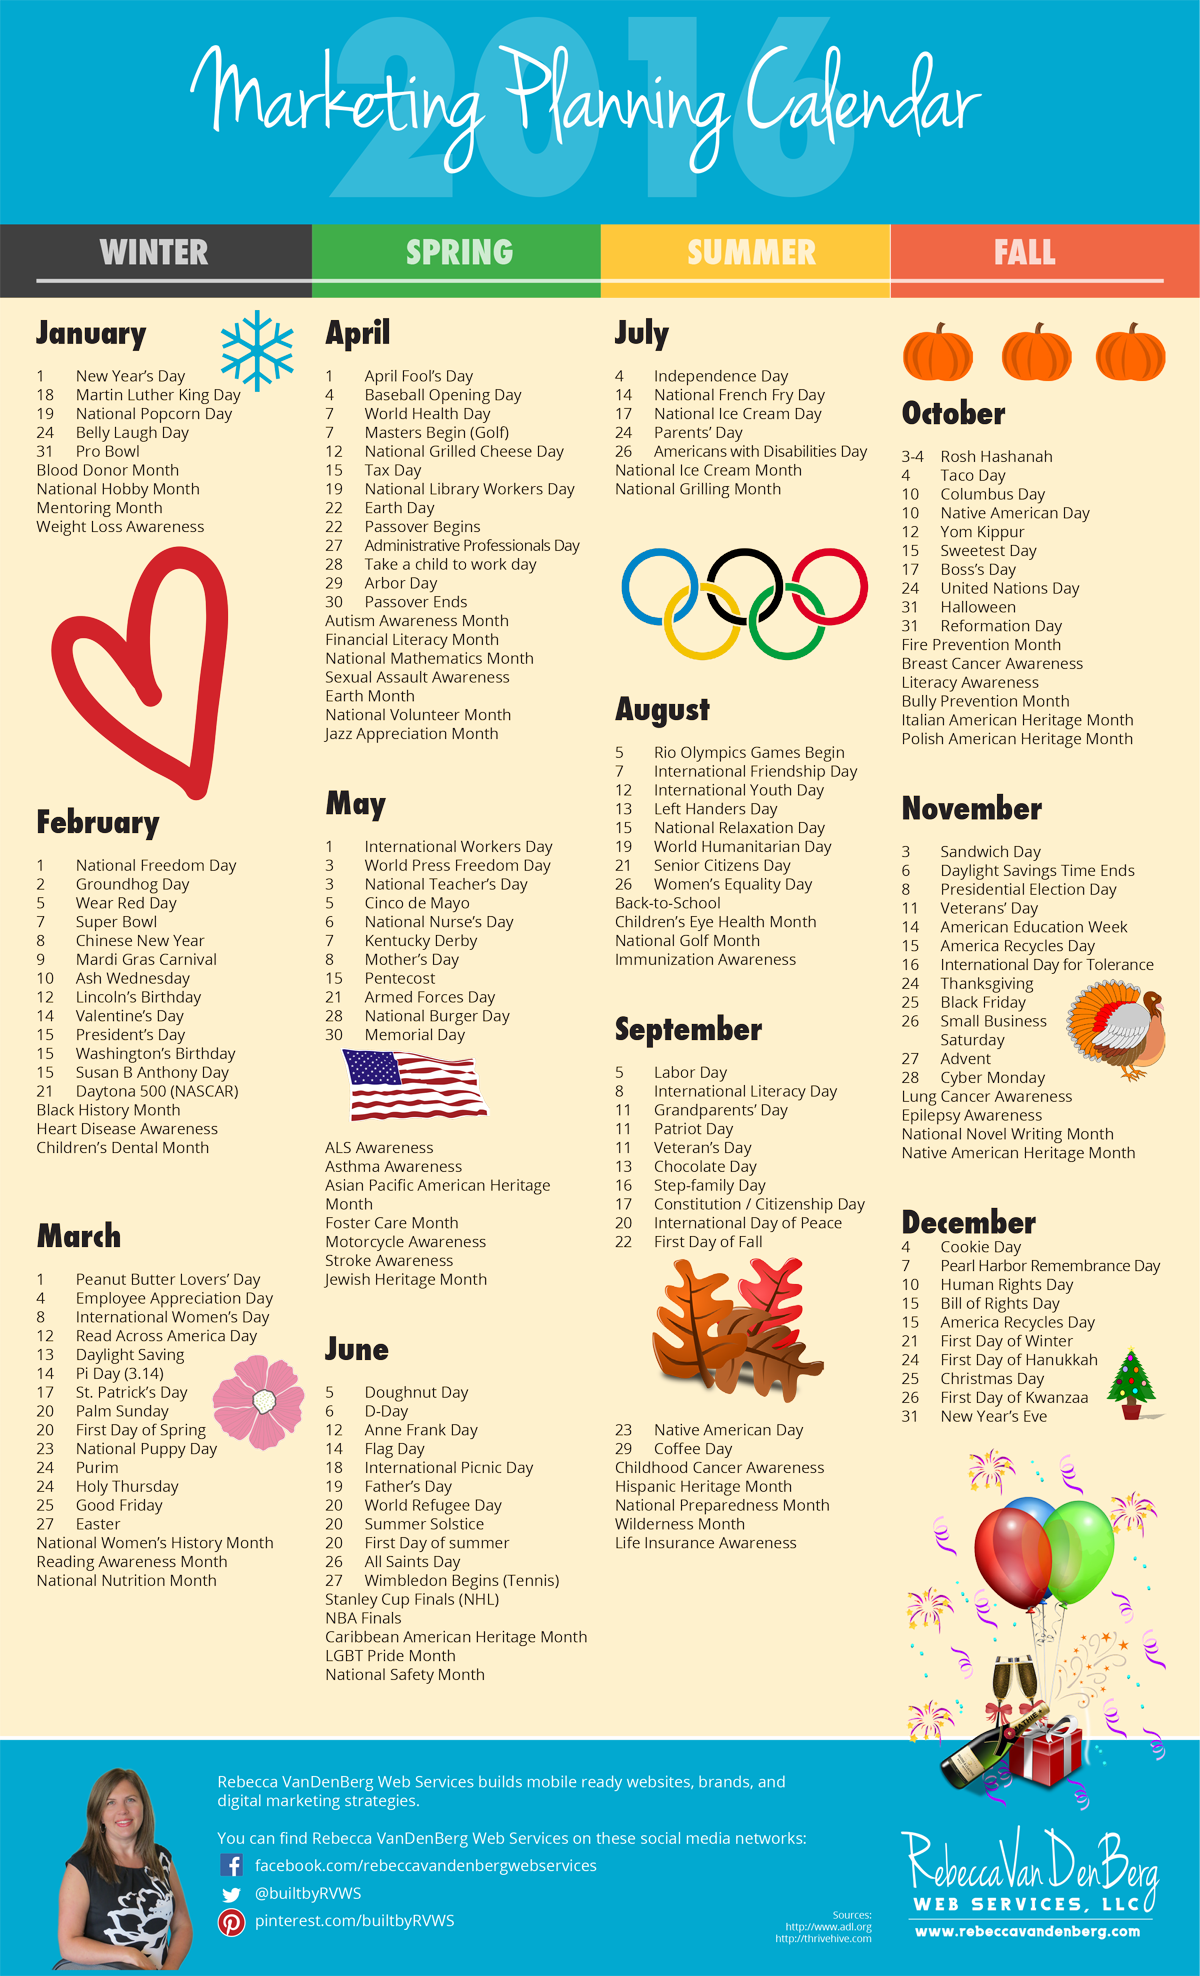 Monthly Calendar Of Events Special Days To Celebrate : Marketing planning calendar rebecca vandenberg web